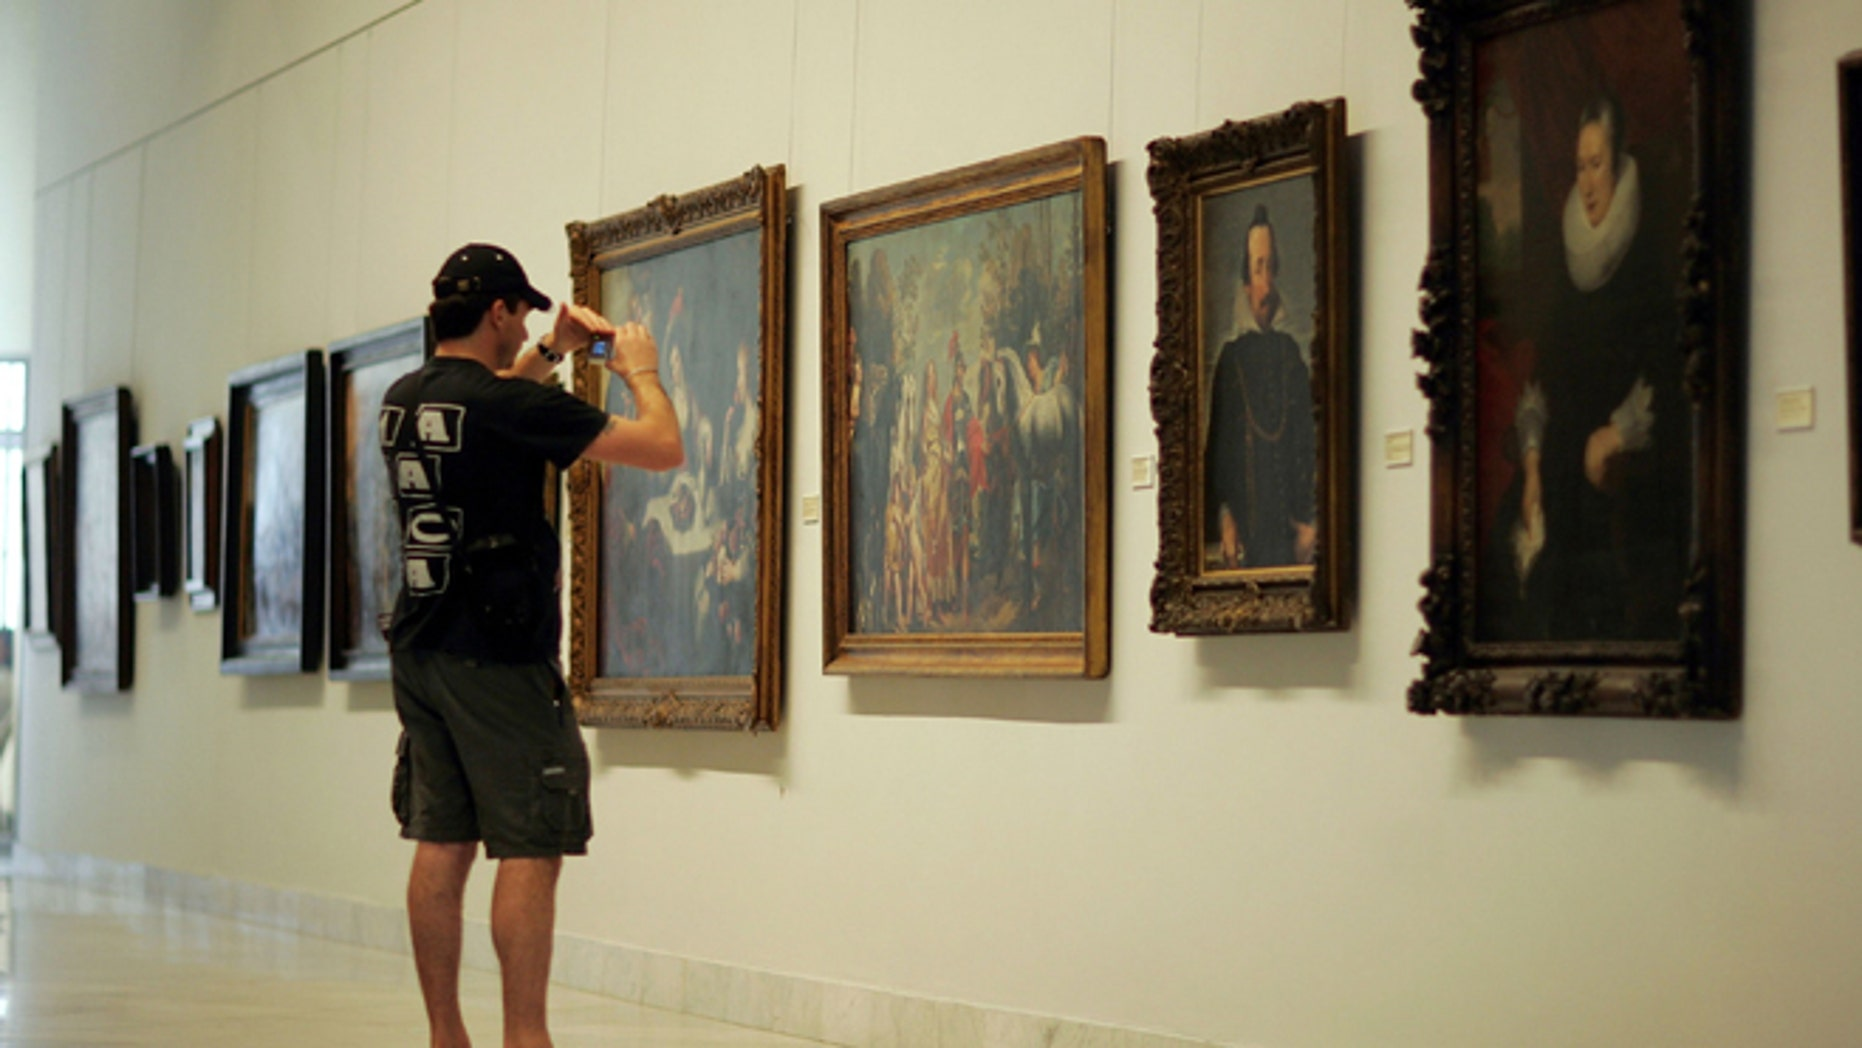 HAVANA - DECEMBER 01: A visitor photographs the paintings on display at the Fine Arts Museum December 1, 2006 in Havana, Cuba. (Photo by Joe Raedle/Getty Images)